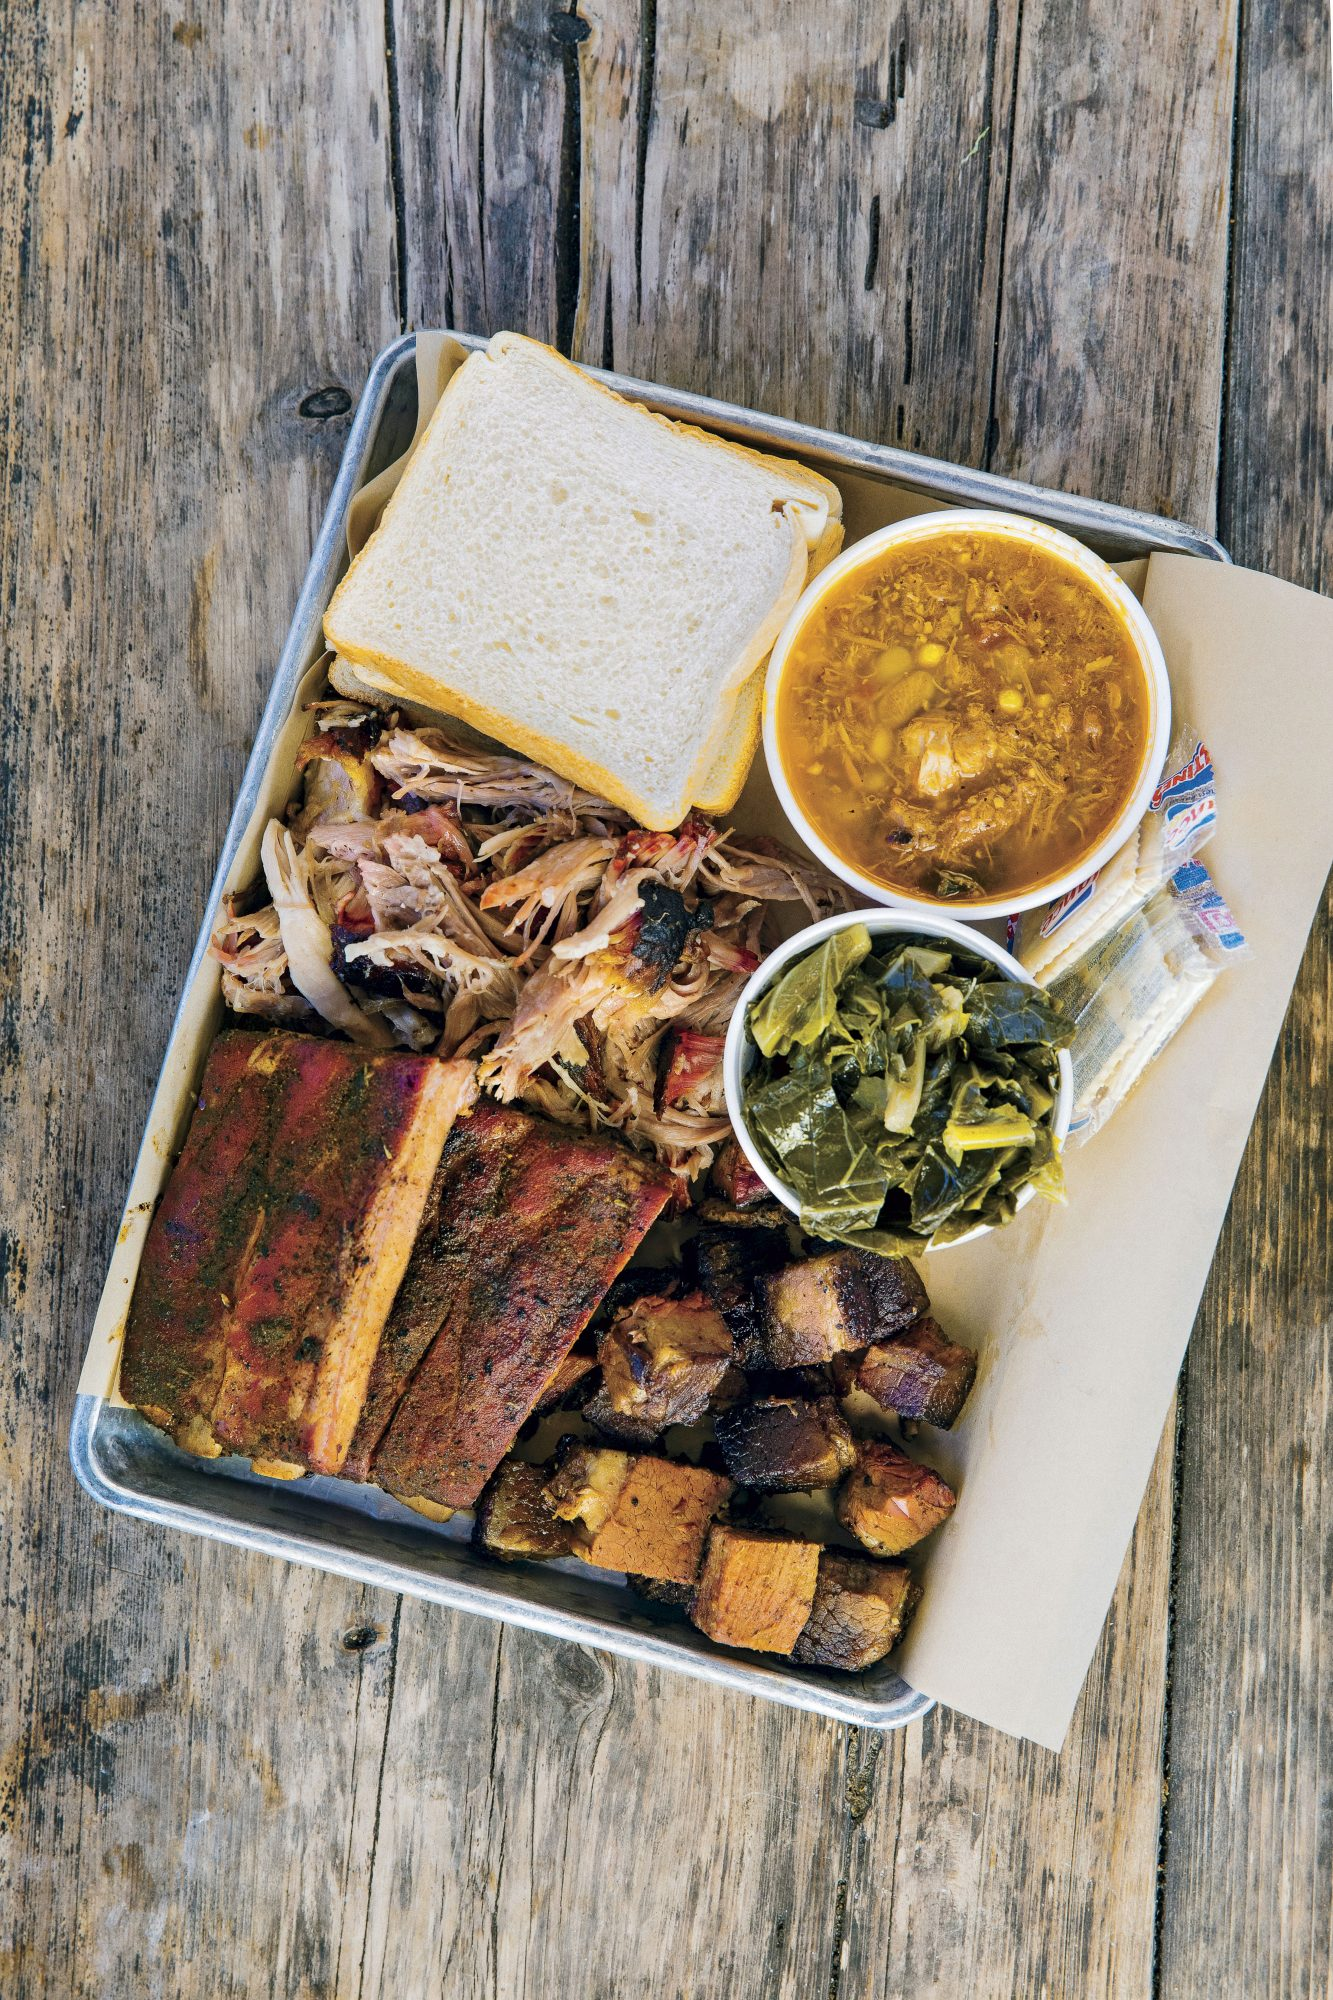 1. Southern Soul Barbeque